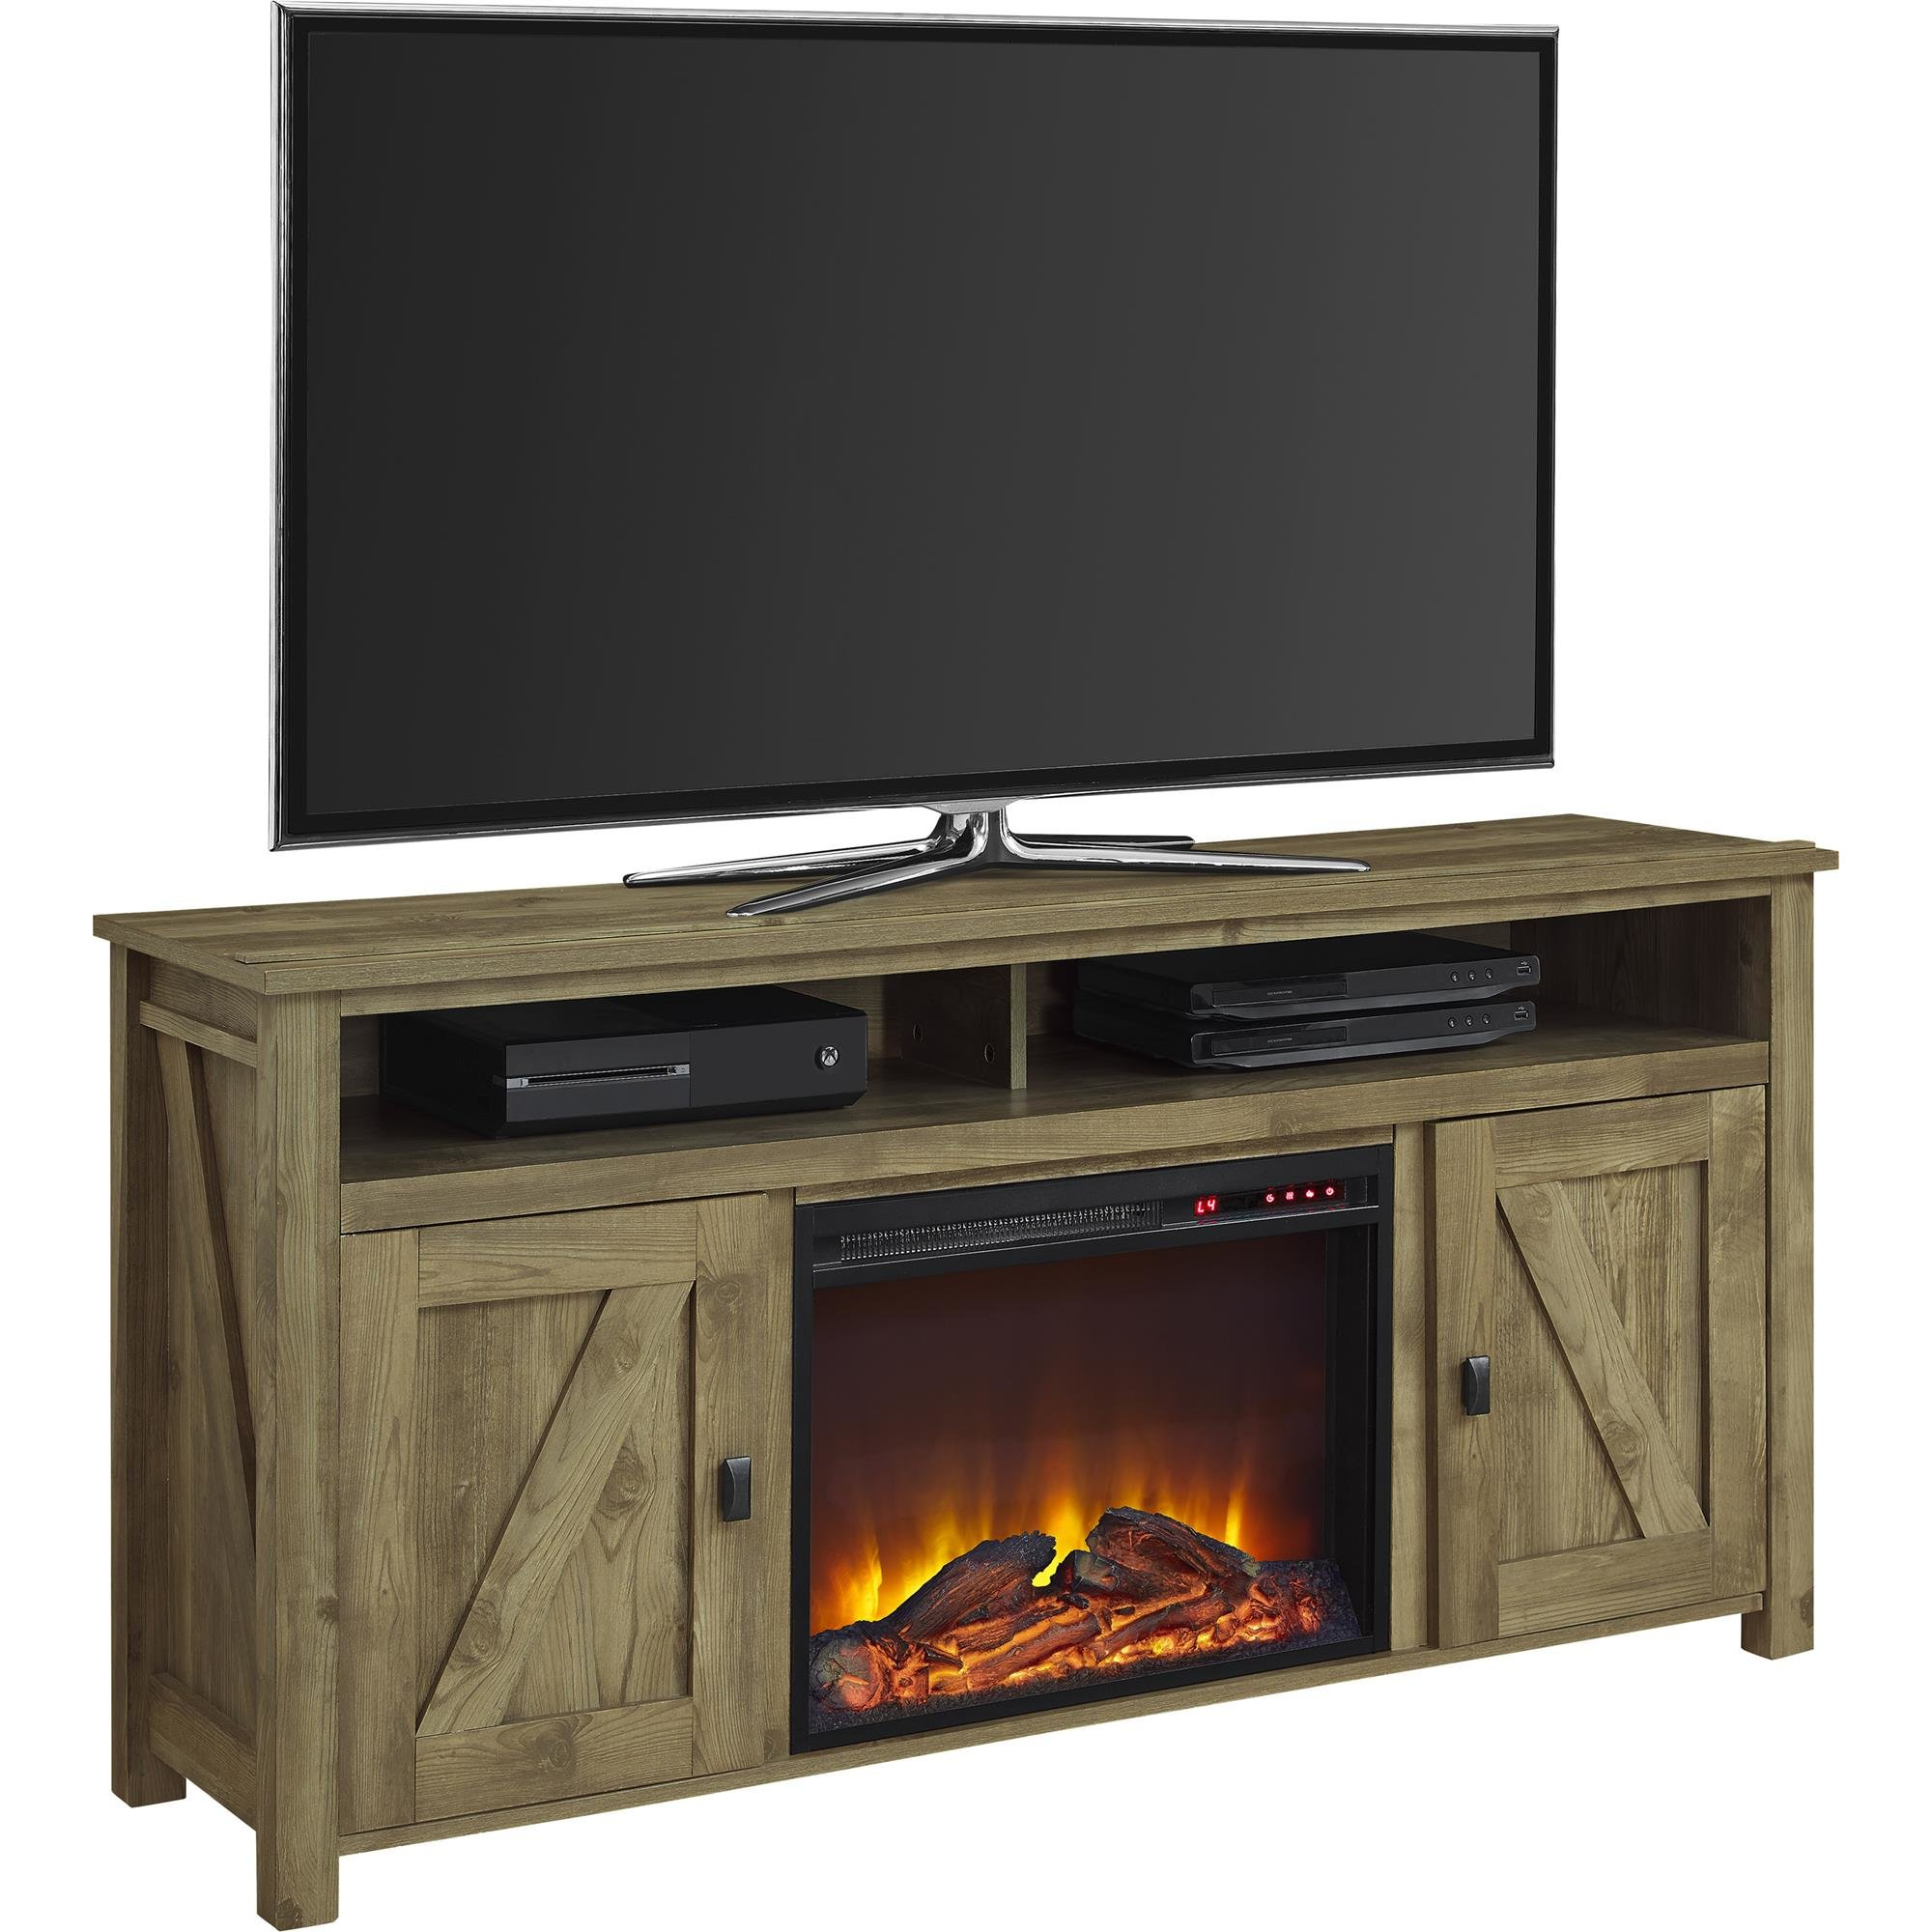 "Whittier Tv Stand For Tvs Up To 60"" With Fireplace & Reviews 